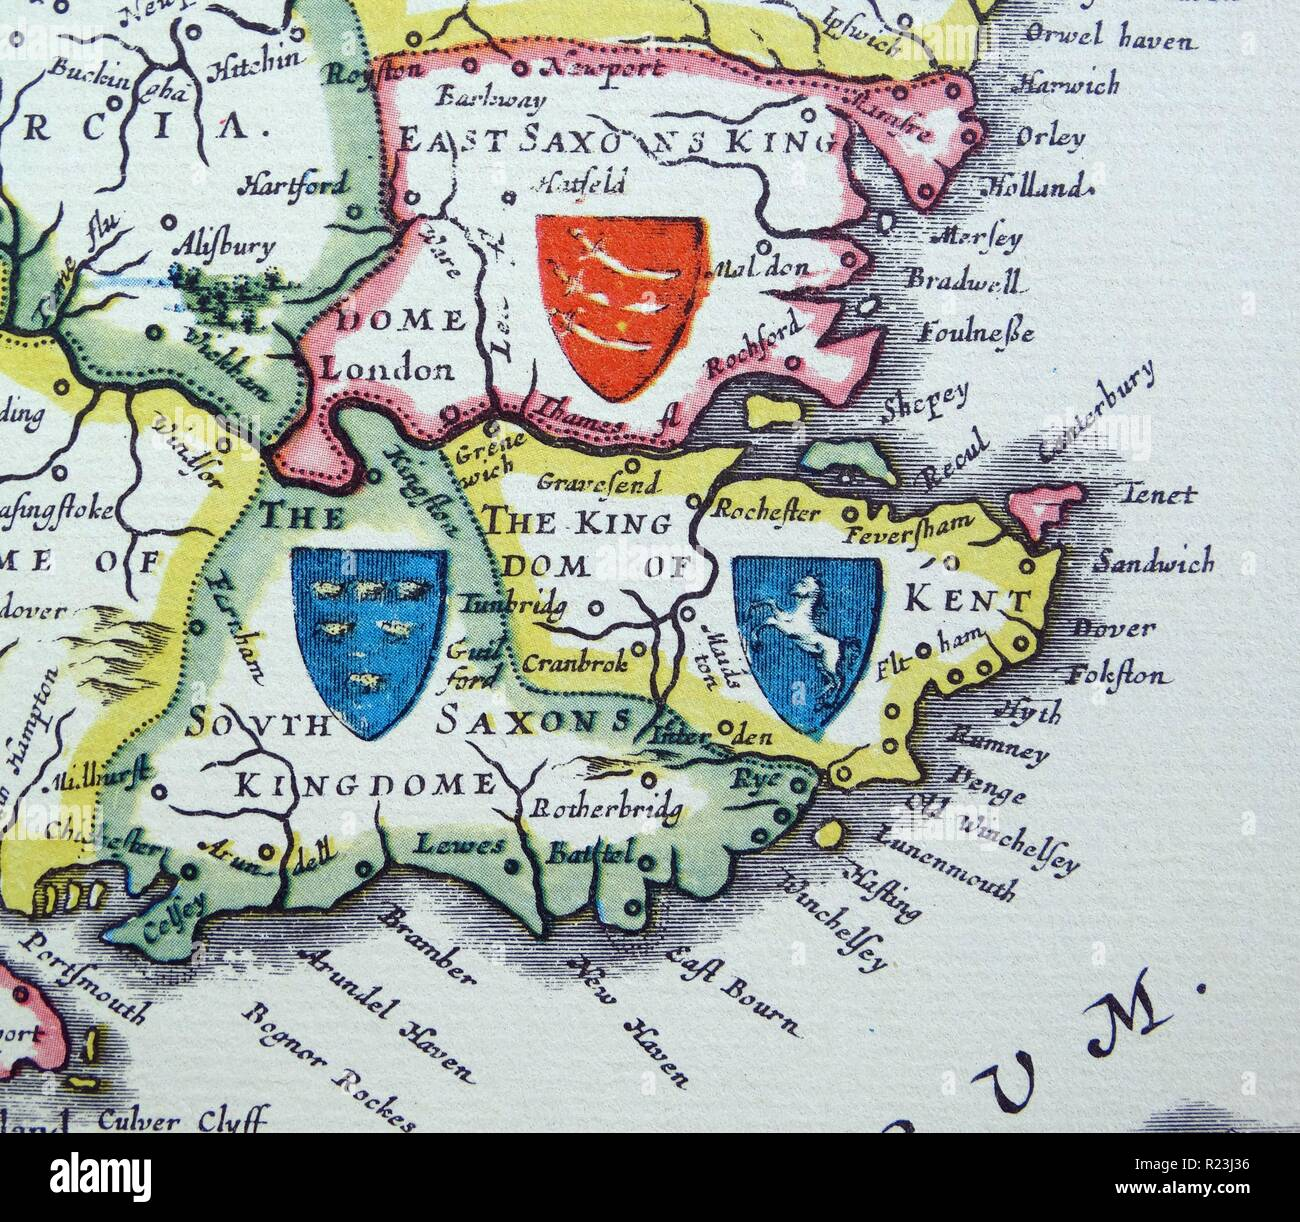 Shields of Sussex, Kent and Essex from the Heptarchy; a collective name applied to the Anglo-Saxon kingdoms of south, east, and central England during late antiquity and the early Middle Ages, Detail from an antique map of Britain, by the Dutch cartographer Willem Blaeu in Atlas Novus (Amsterdam 1635) Stock Photo